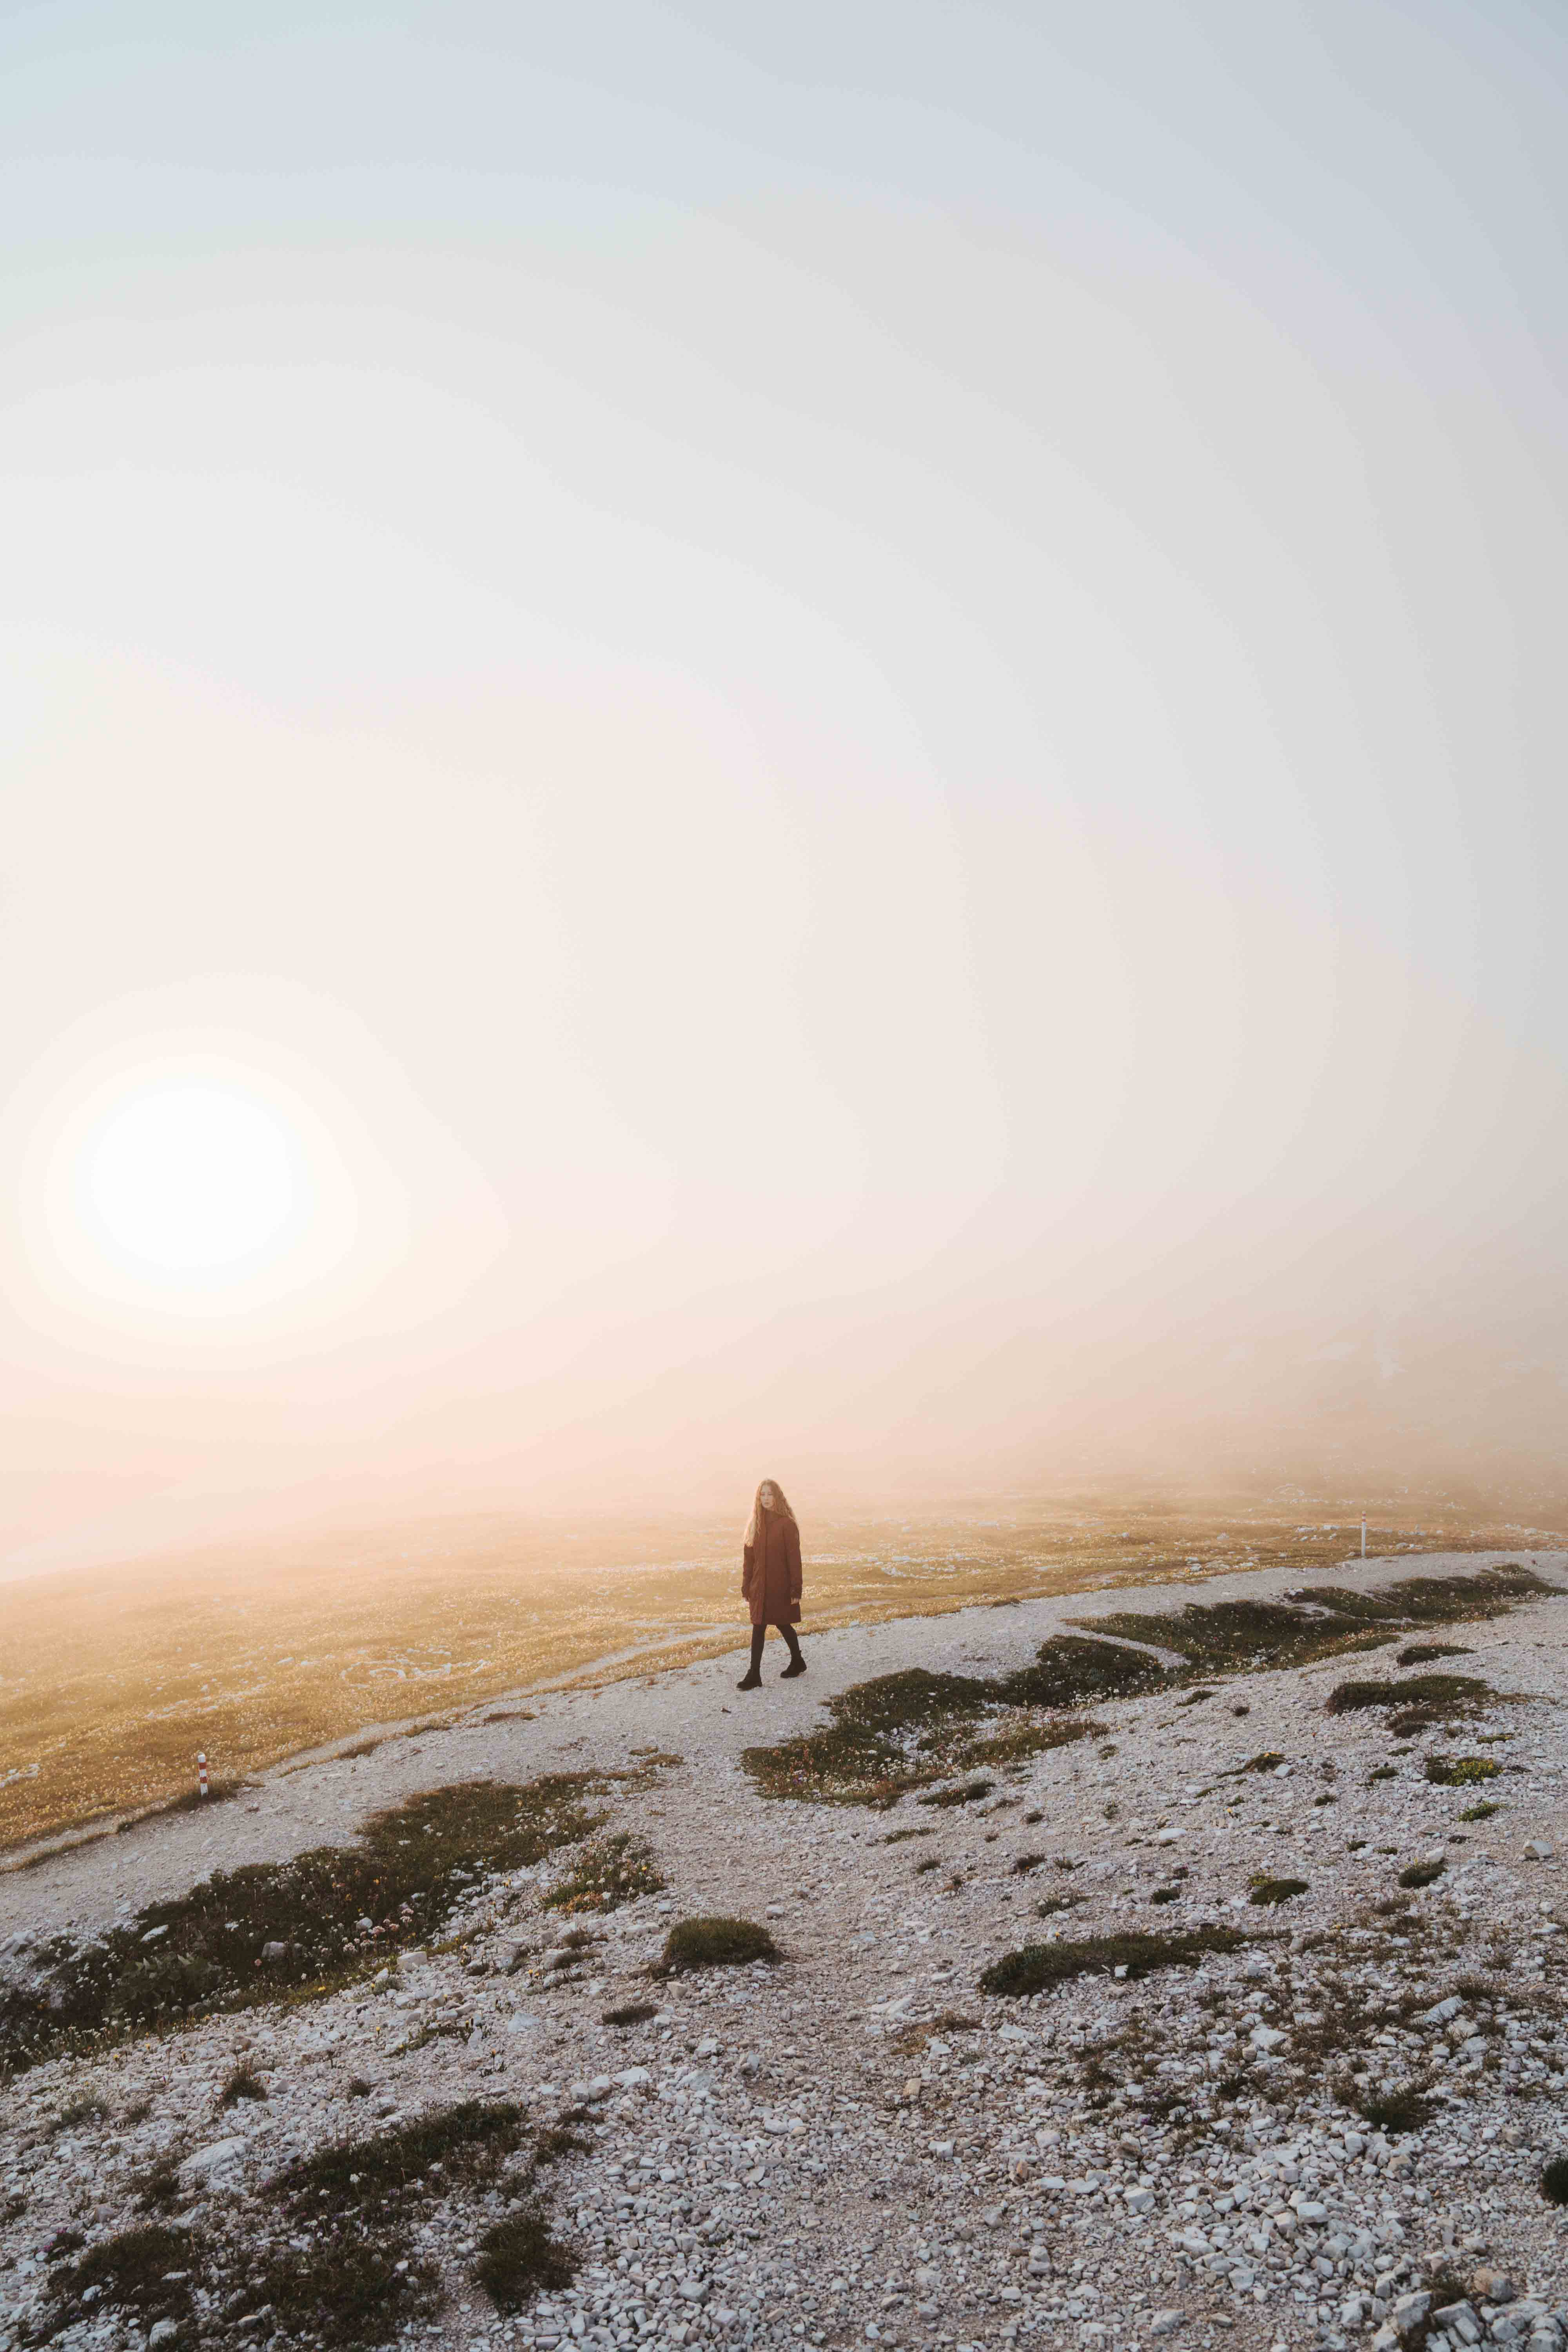 person standing alone in orange glowing fog